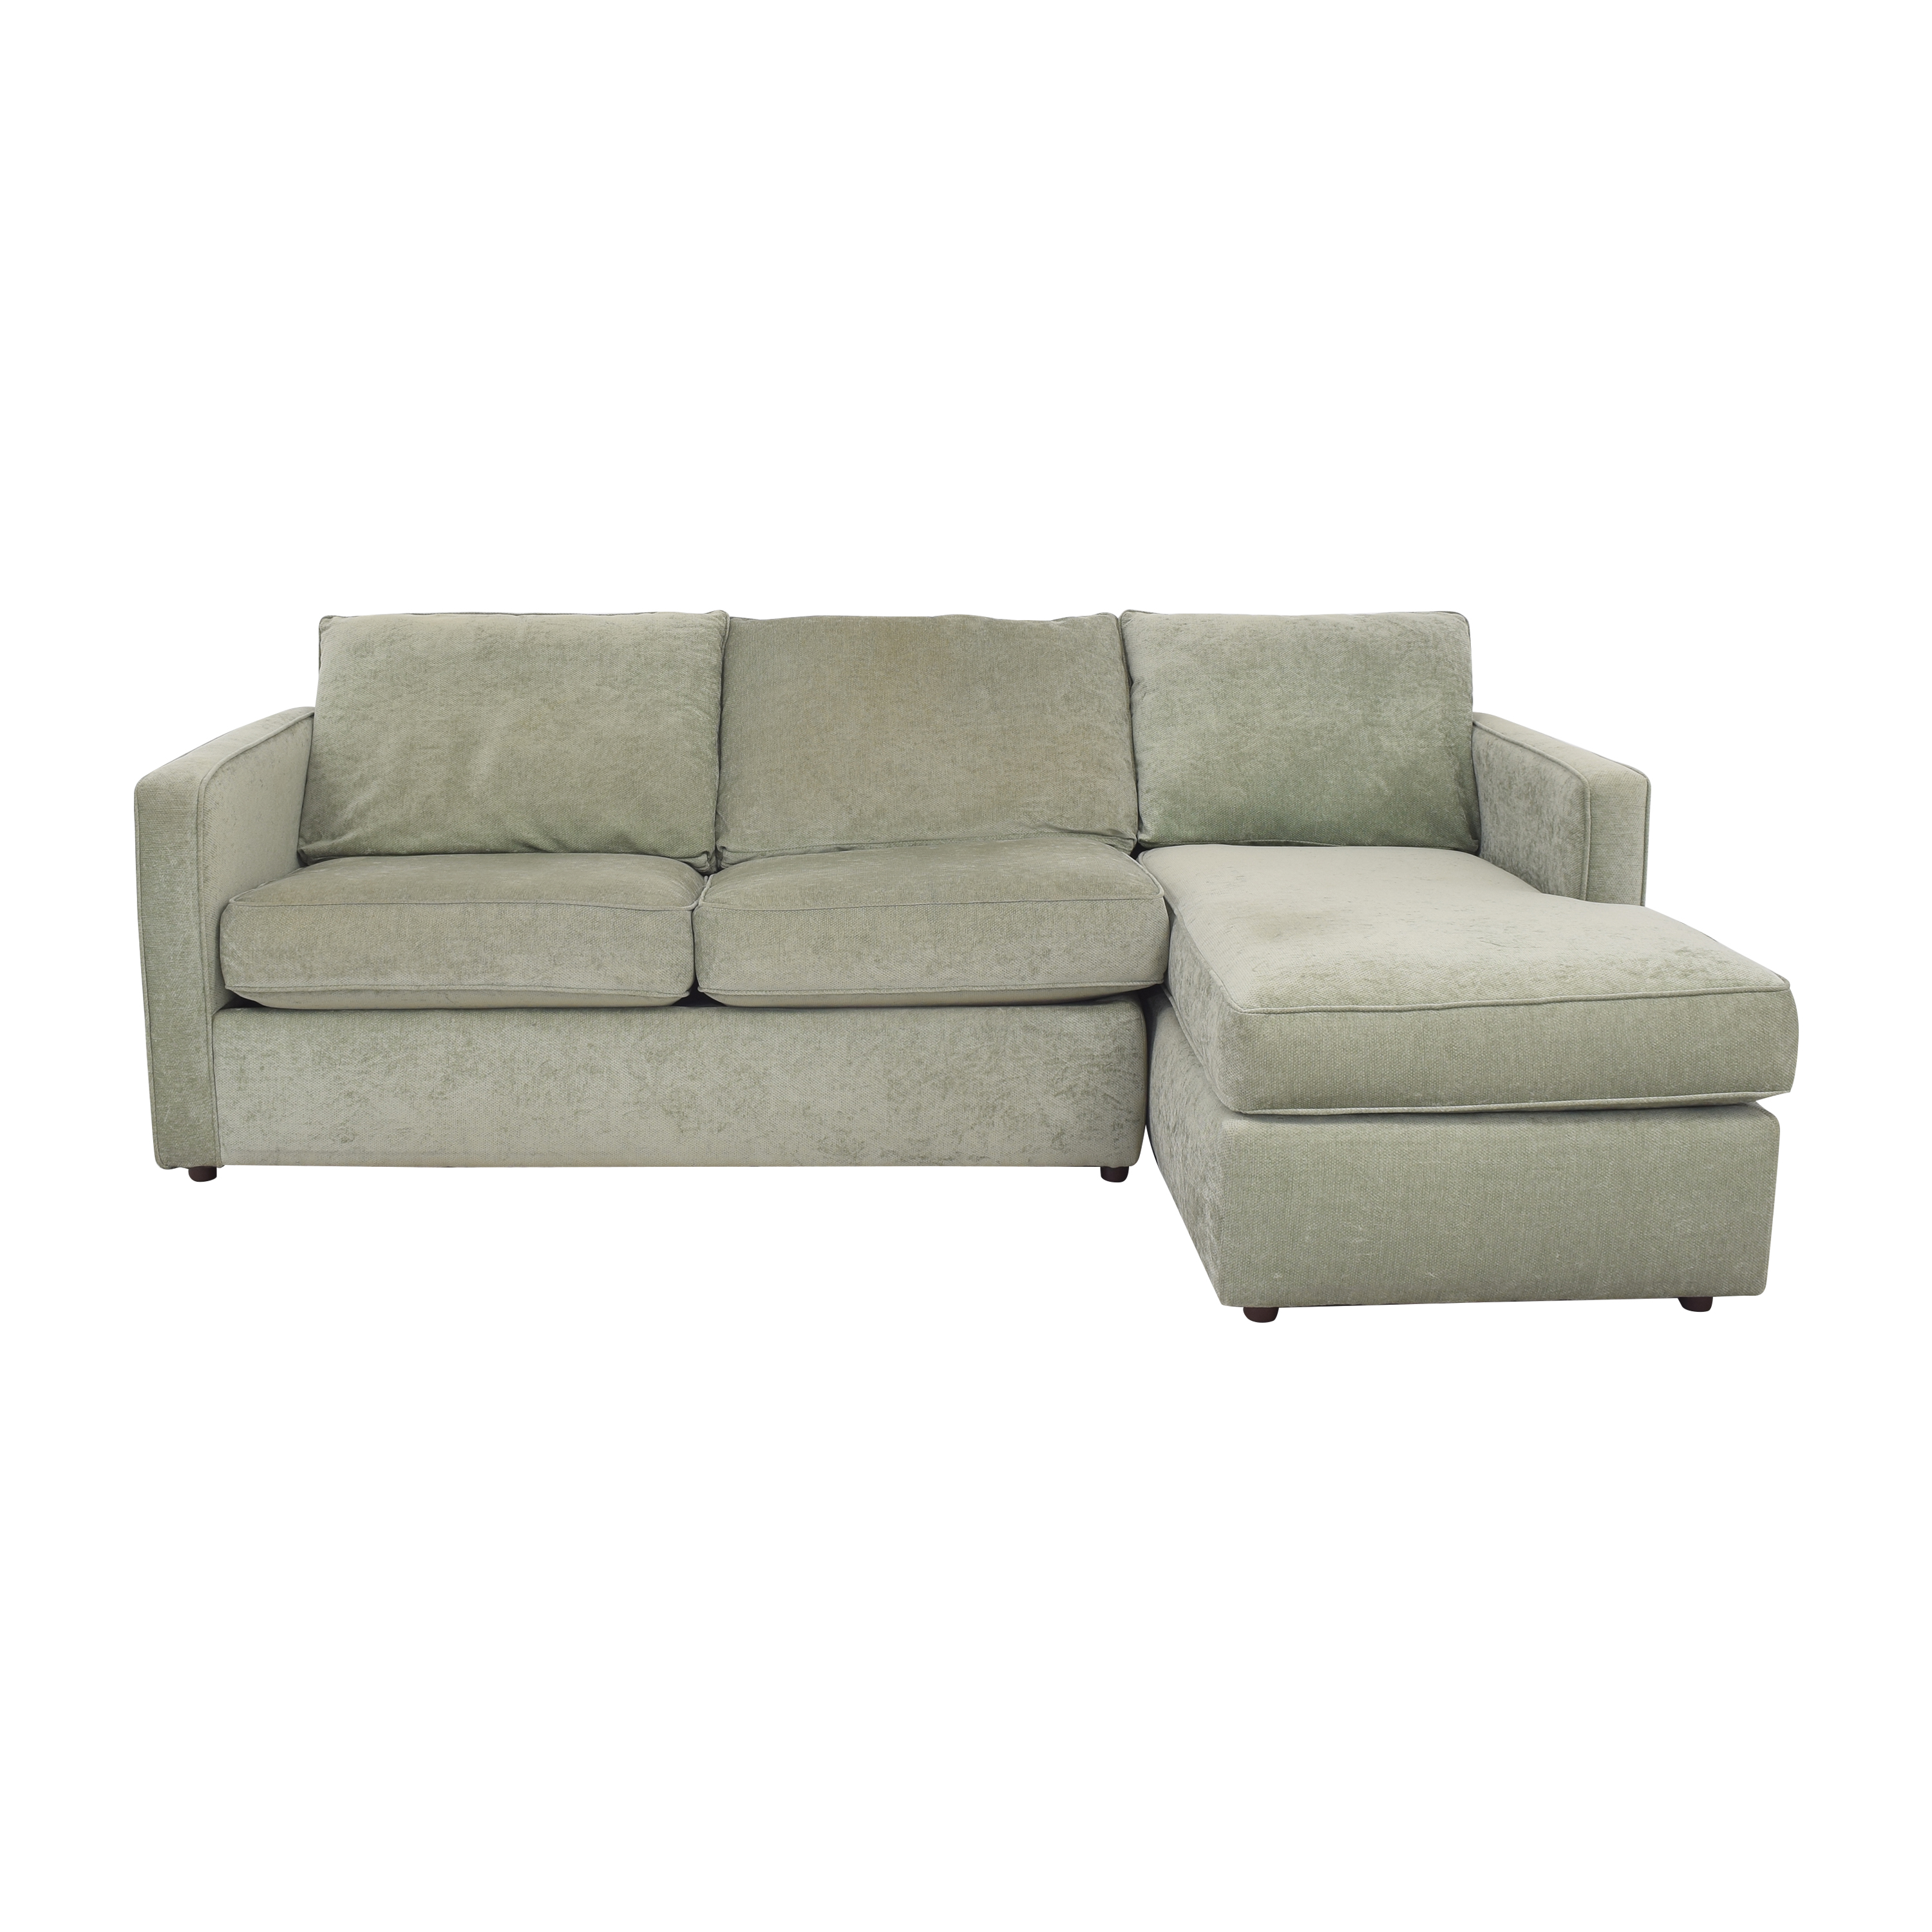 Custom Chaise Sectional Sofa nyc